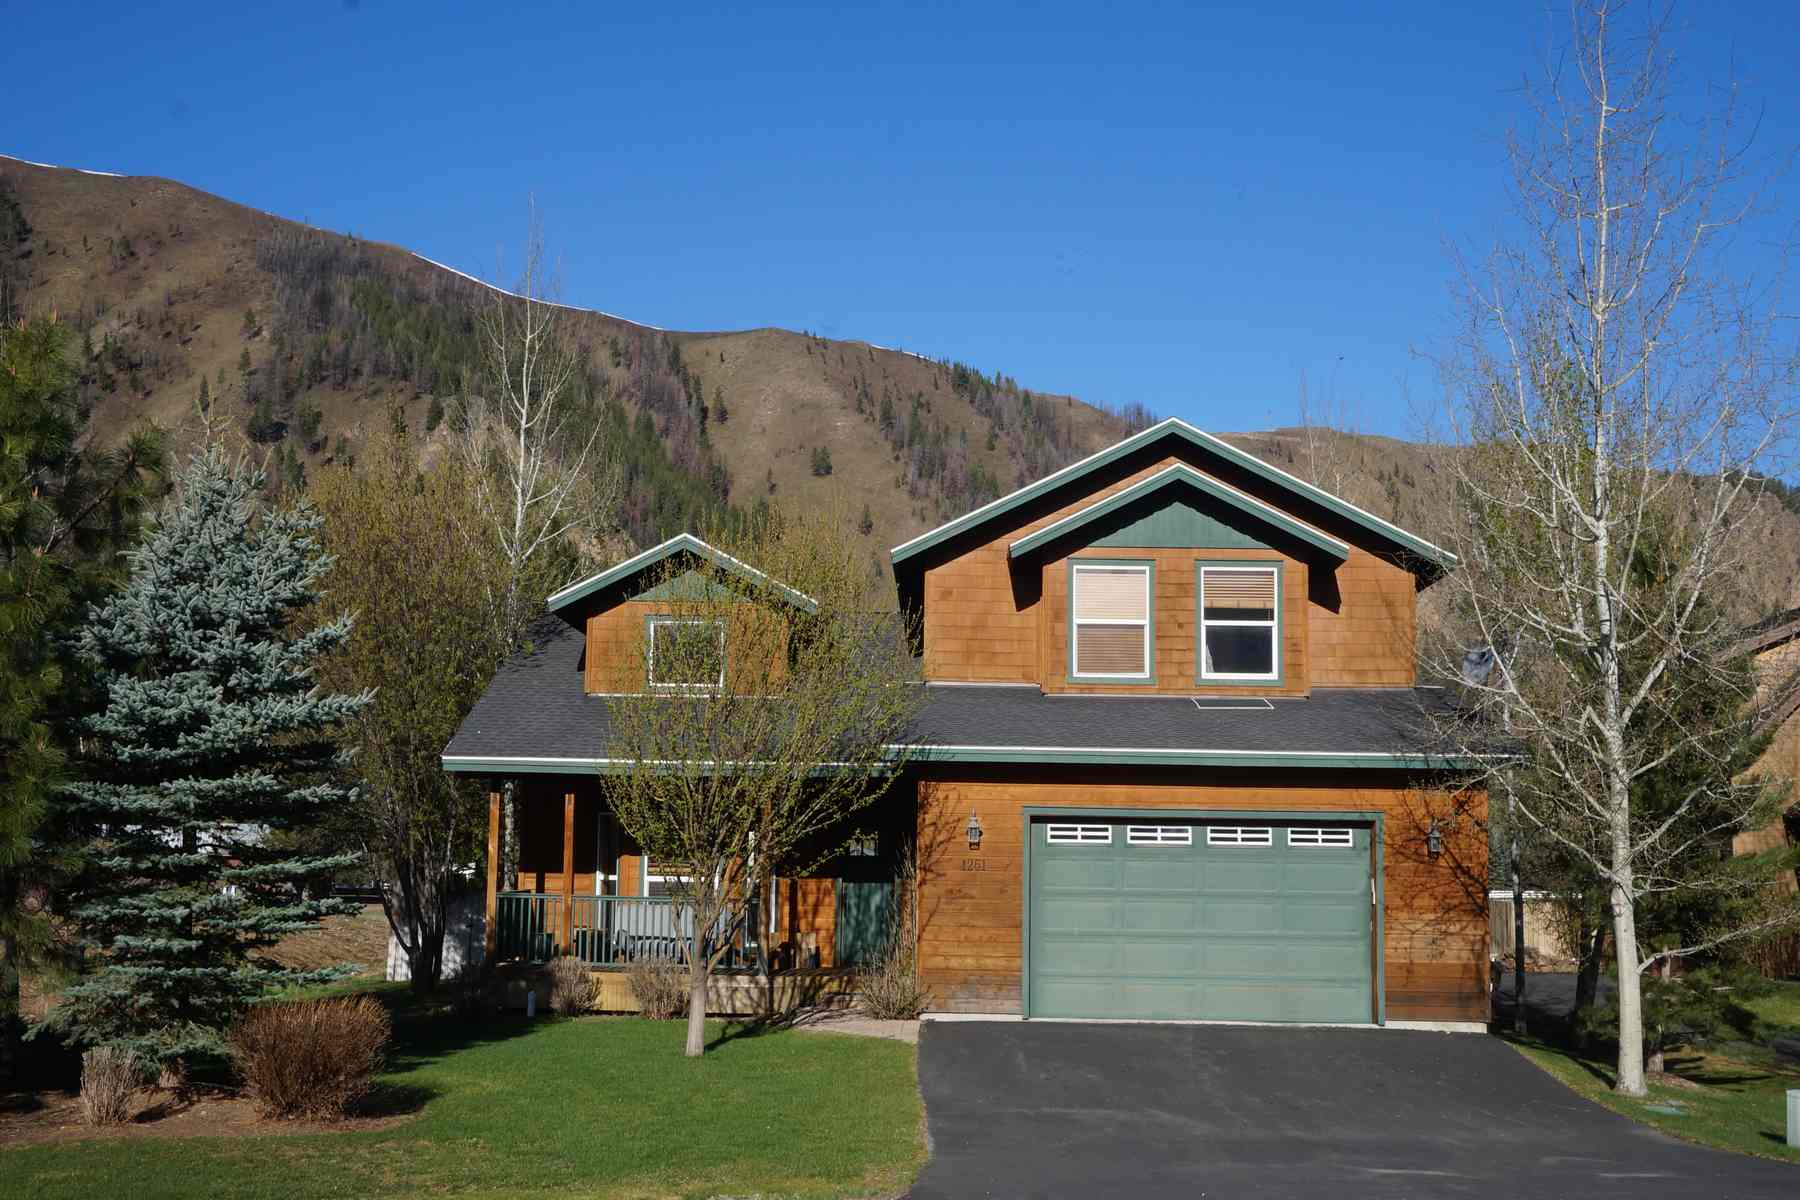 Single Family Home for Sale at Northtidge Craftsman 1261 N. Second Ave Hailey, Idaho 83333 United States